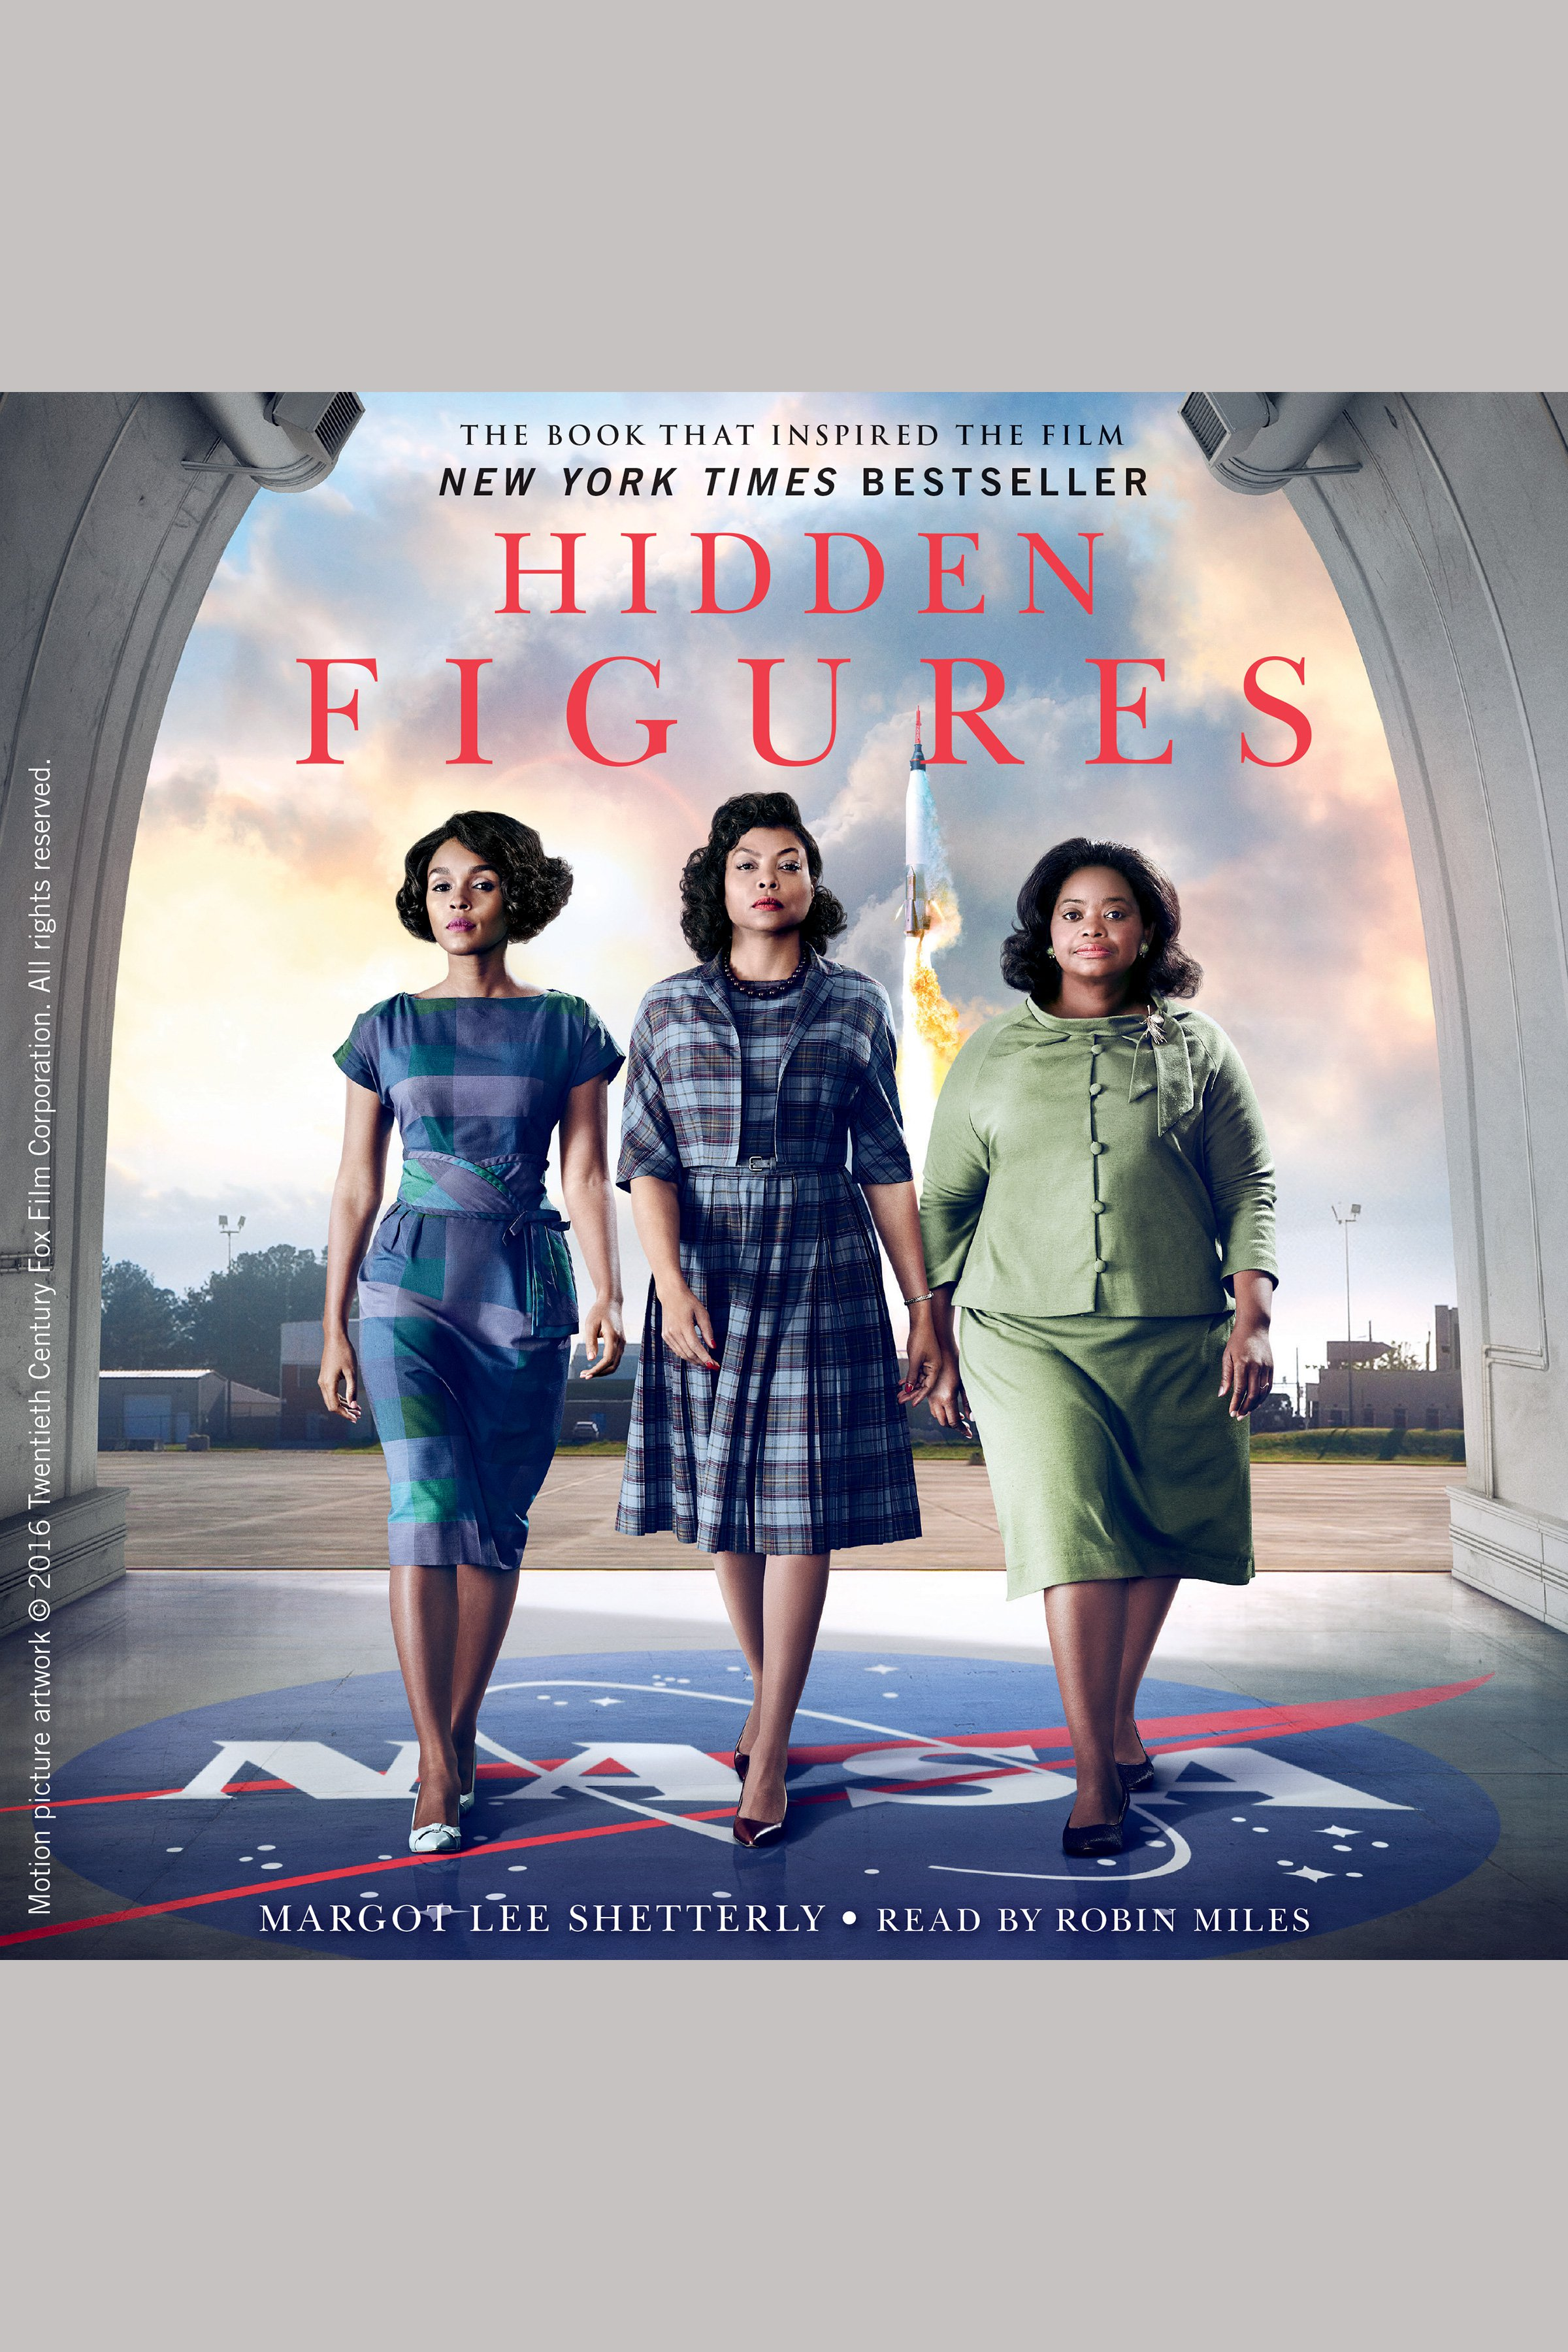 Hidden Figures [AUDIO EBOOK] The American Dream and the Untold Story of the Black Women Mathematicians Who Helped Win the Space Race